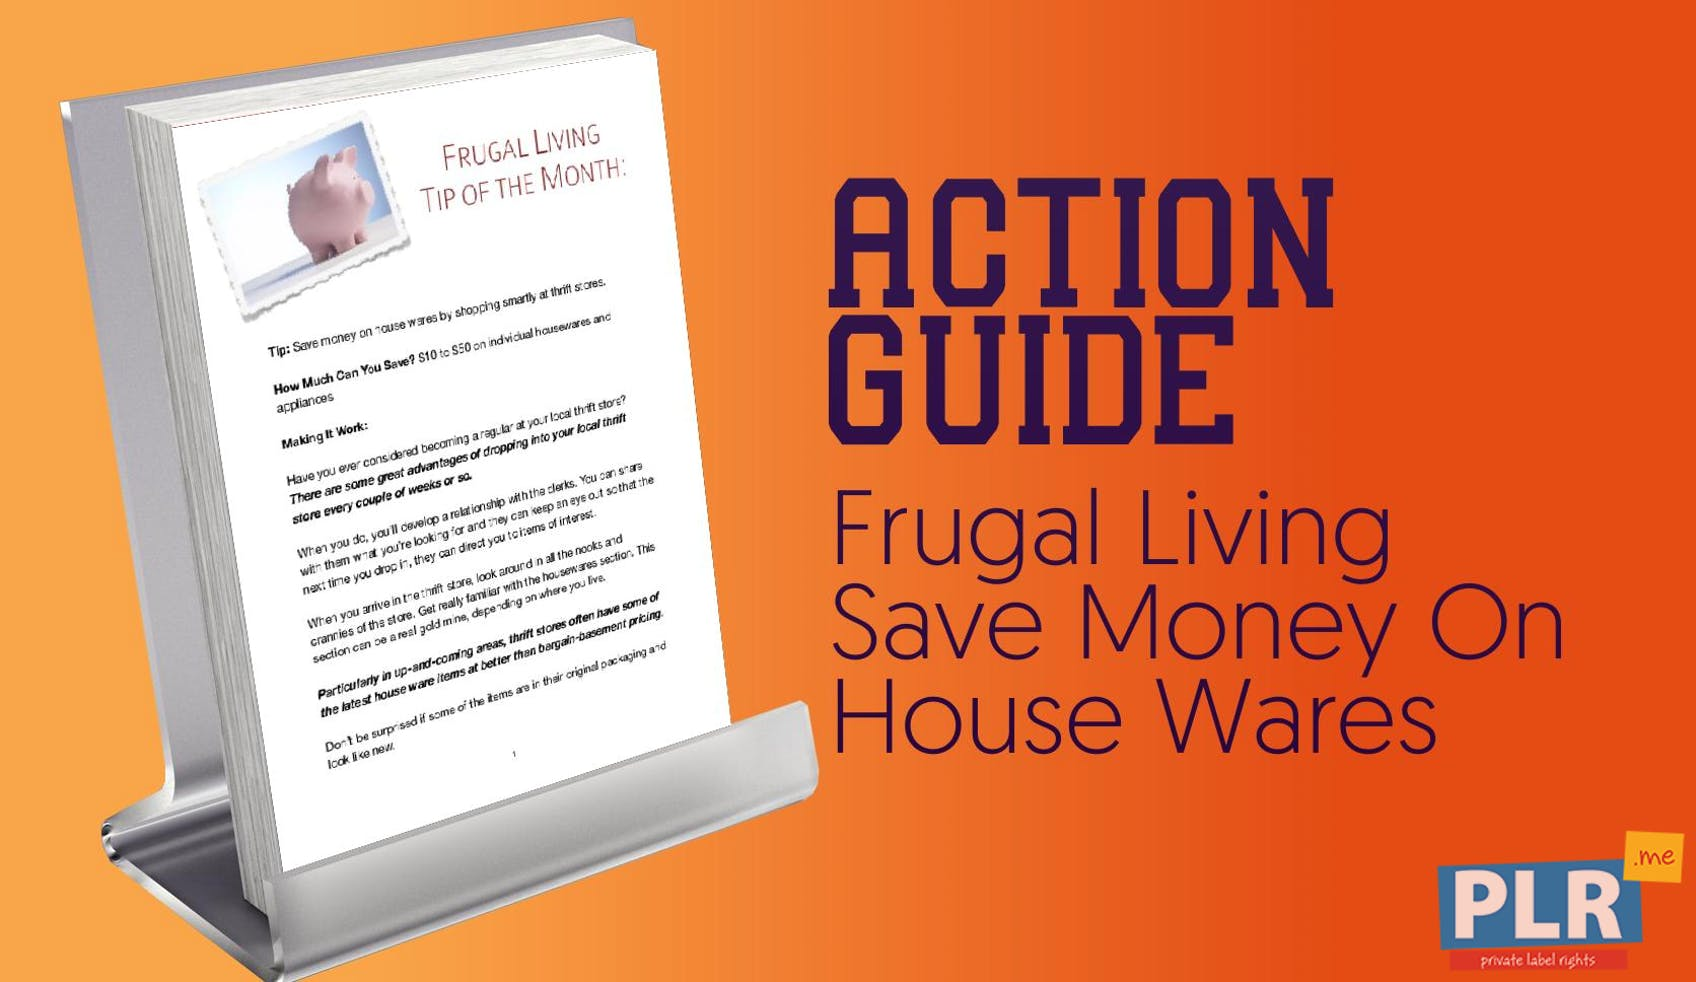 Frugal Living Save Money On House Wares